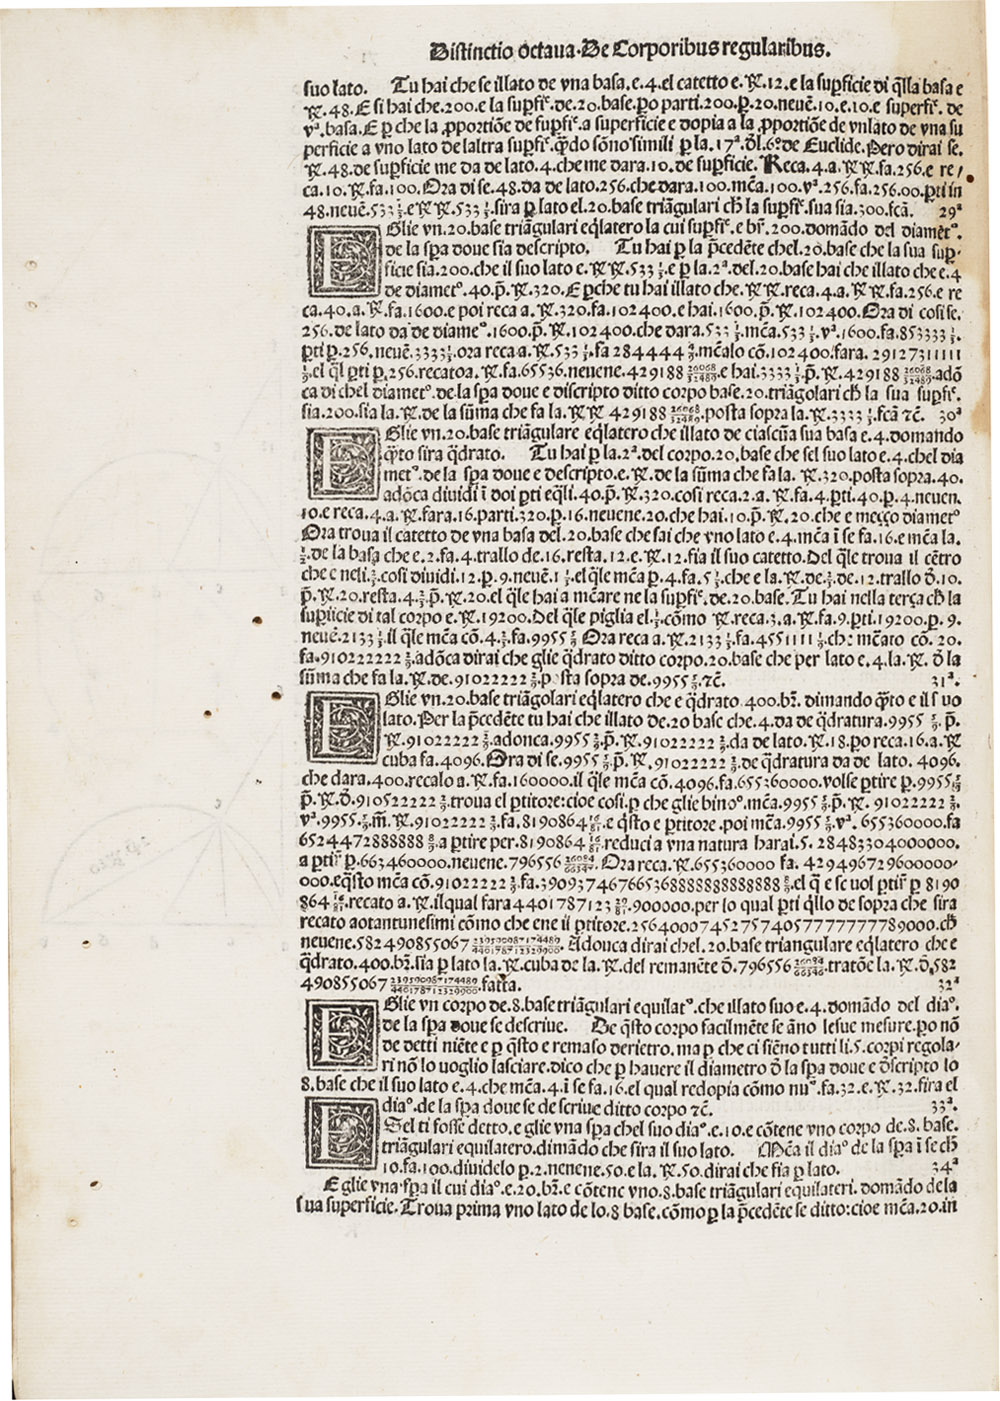 f71 - verso,  Image number:sil7-108-50a